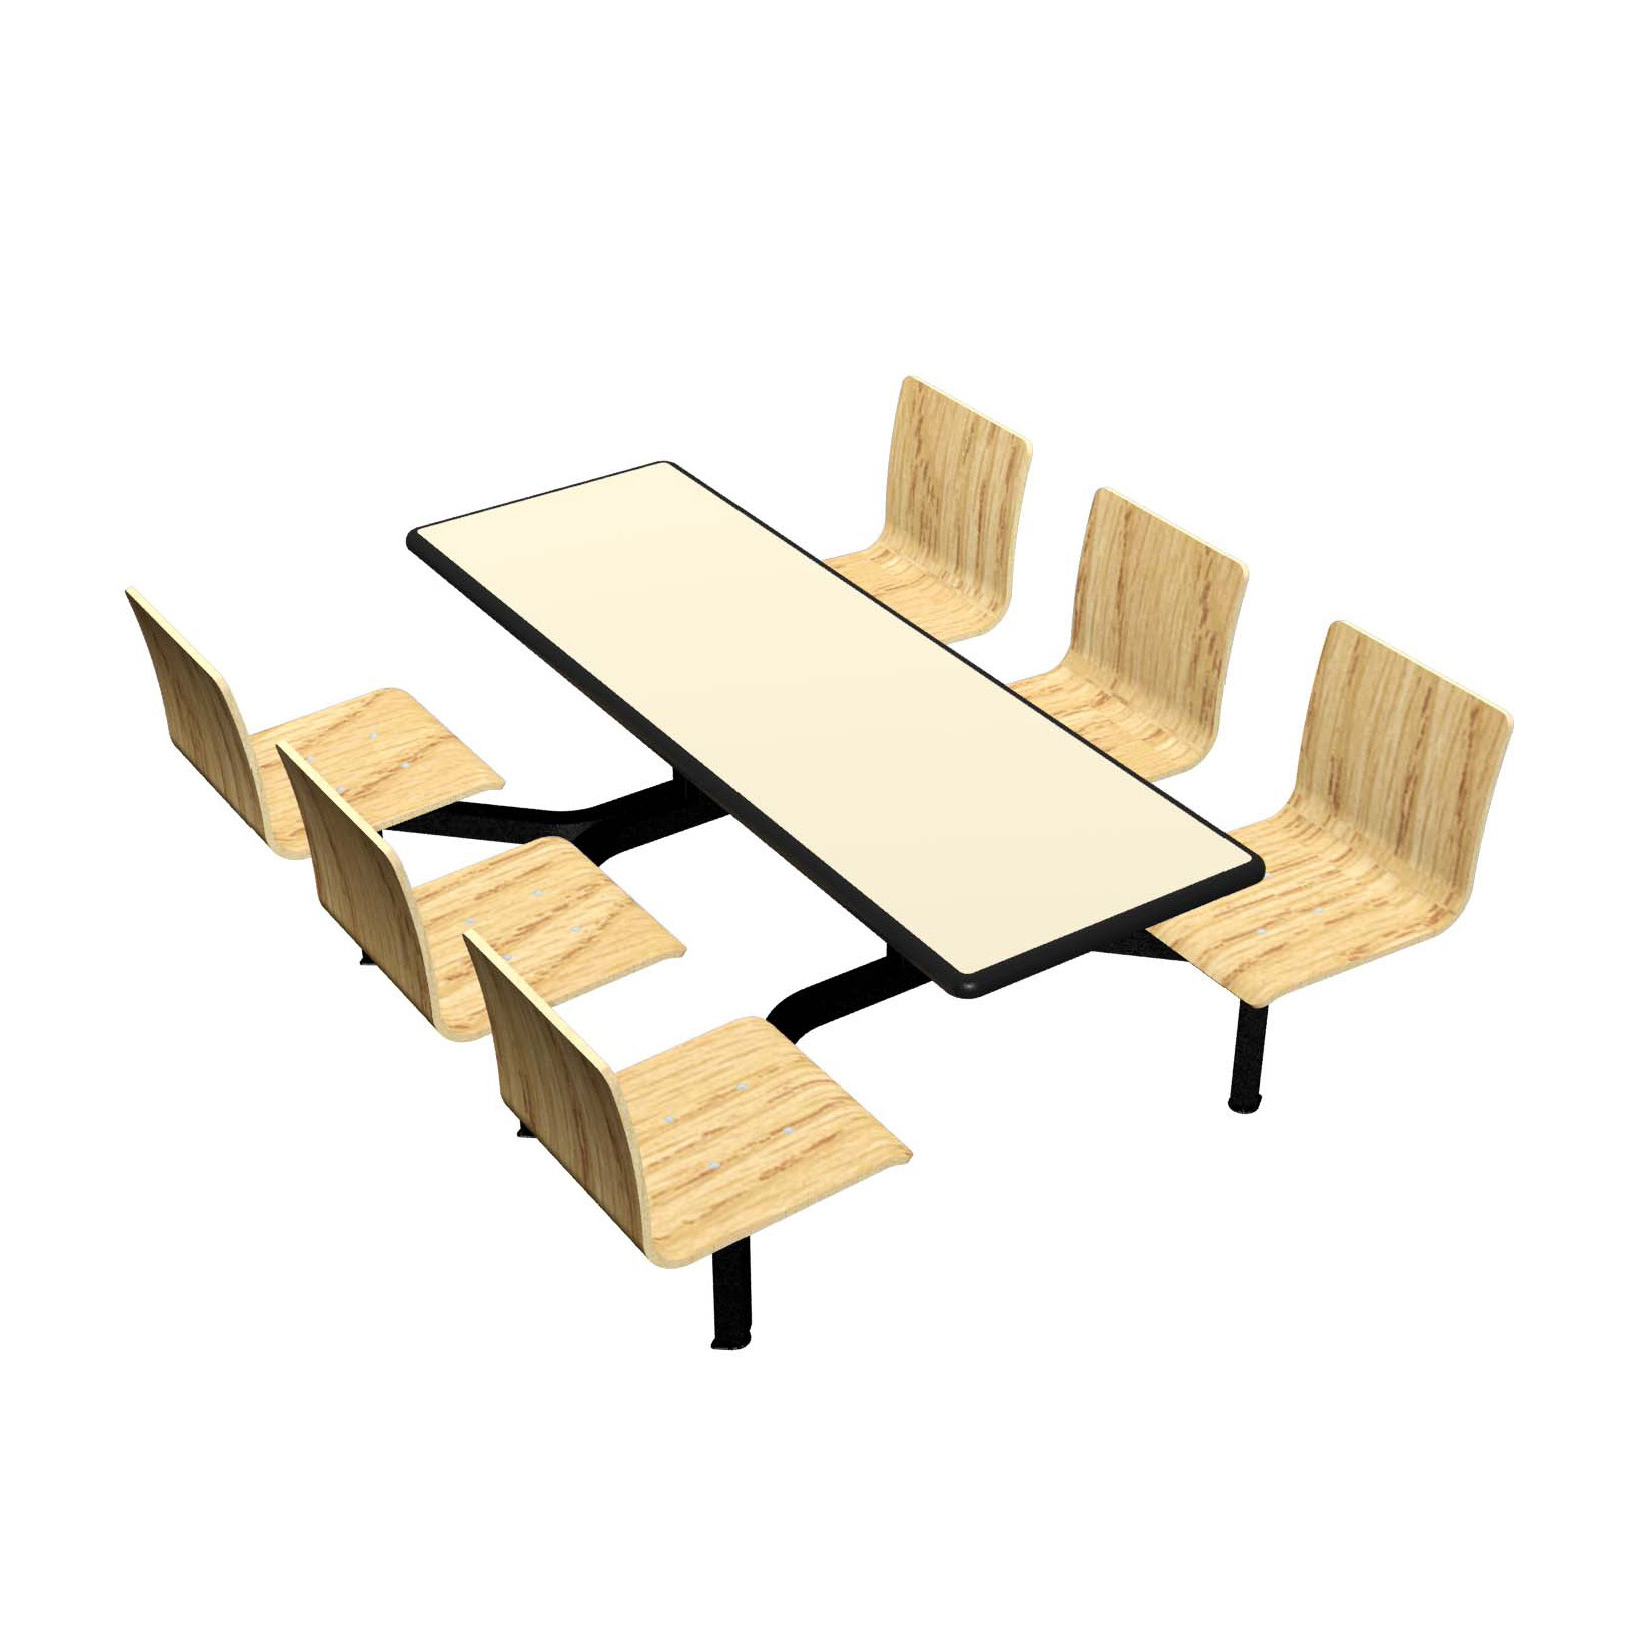 Plymold CEIS006DELE cluster seating unit, indoor